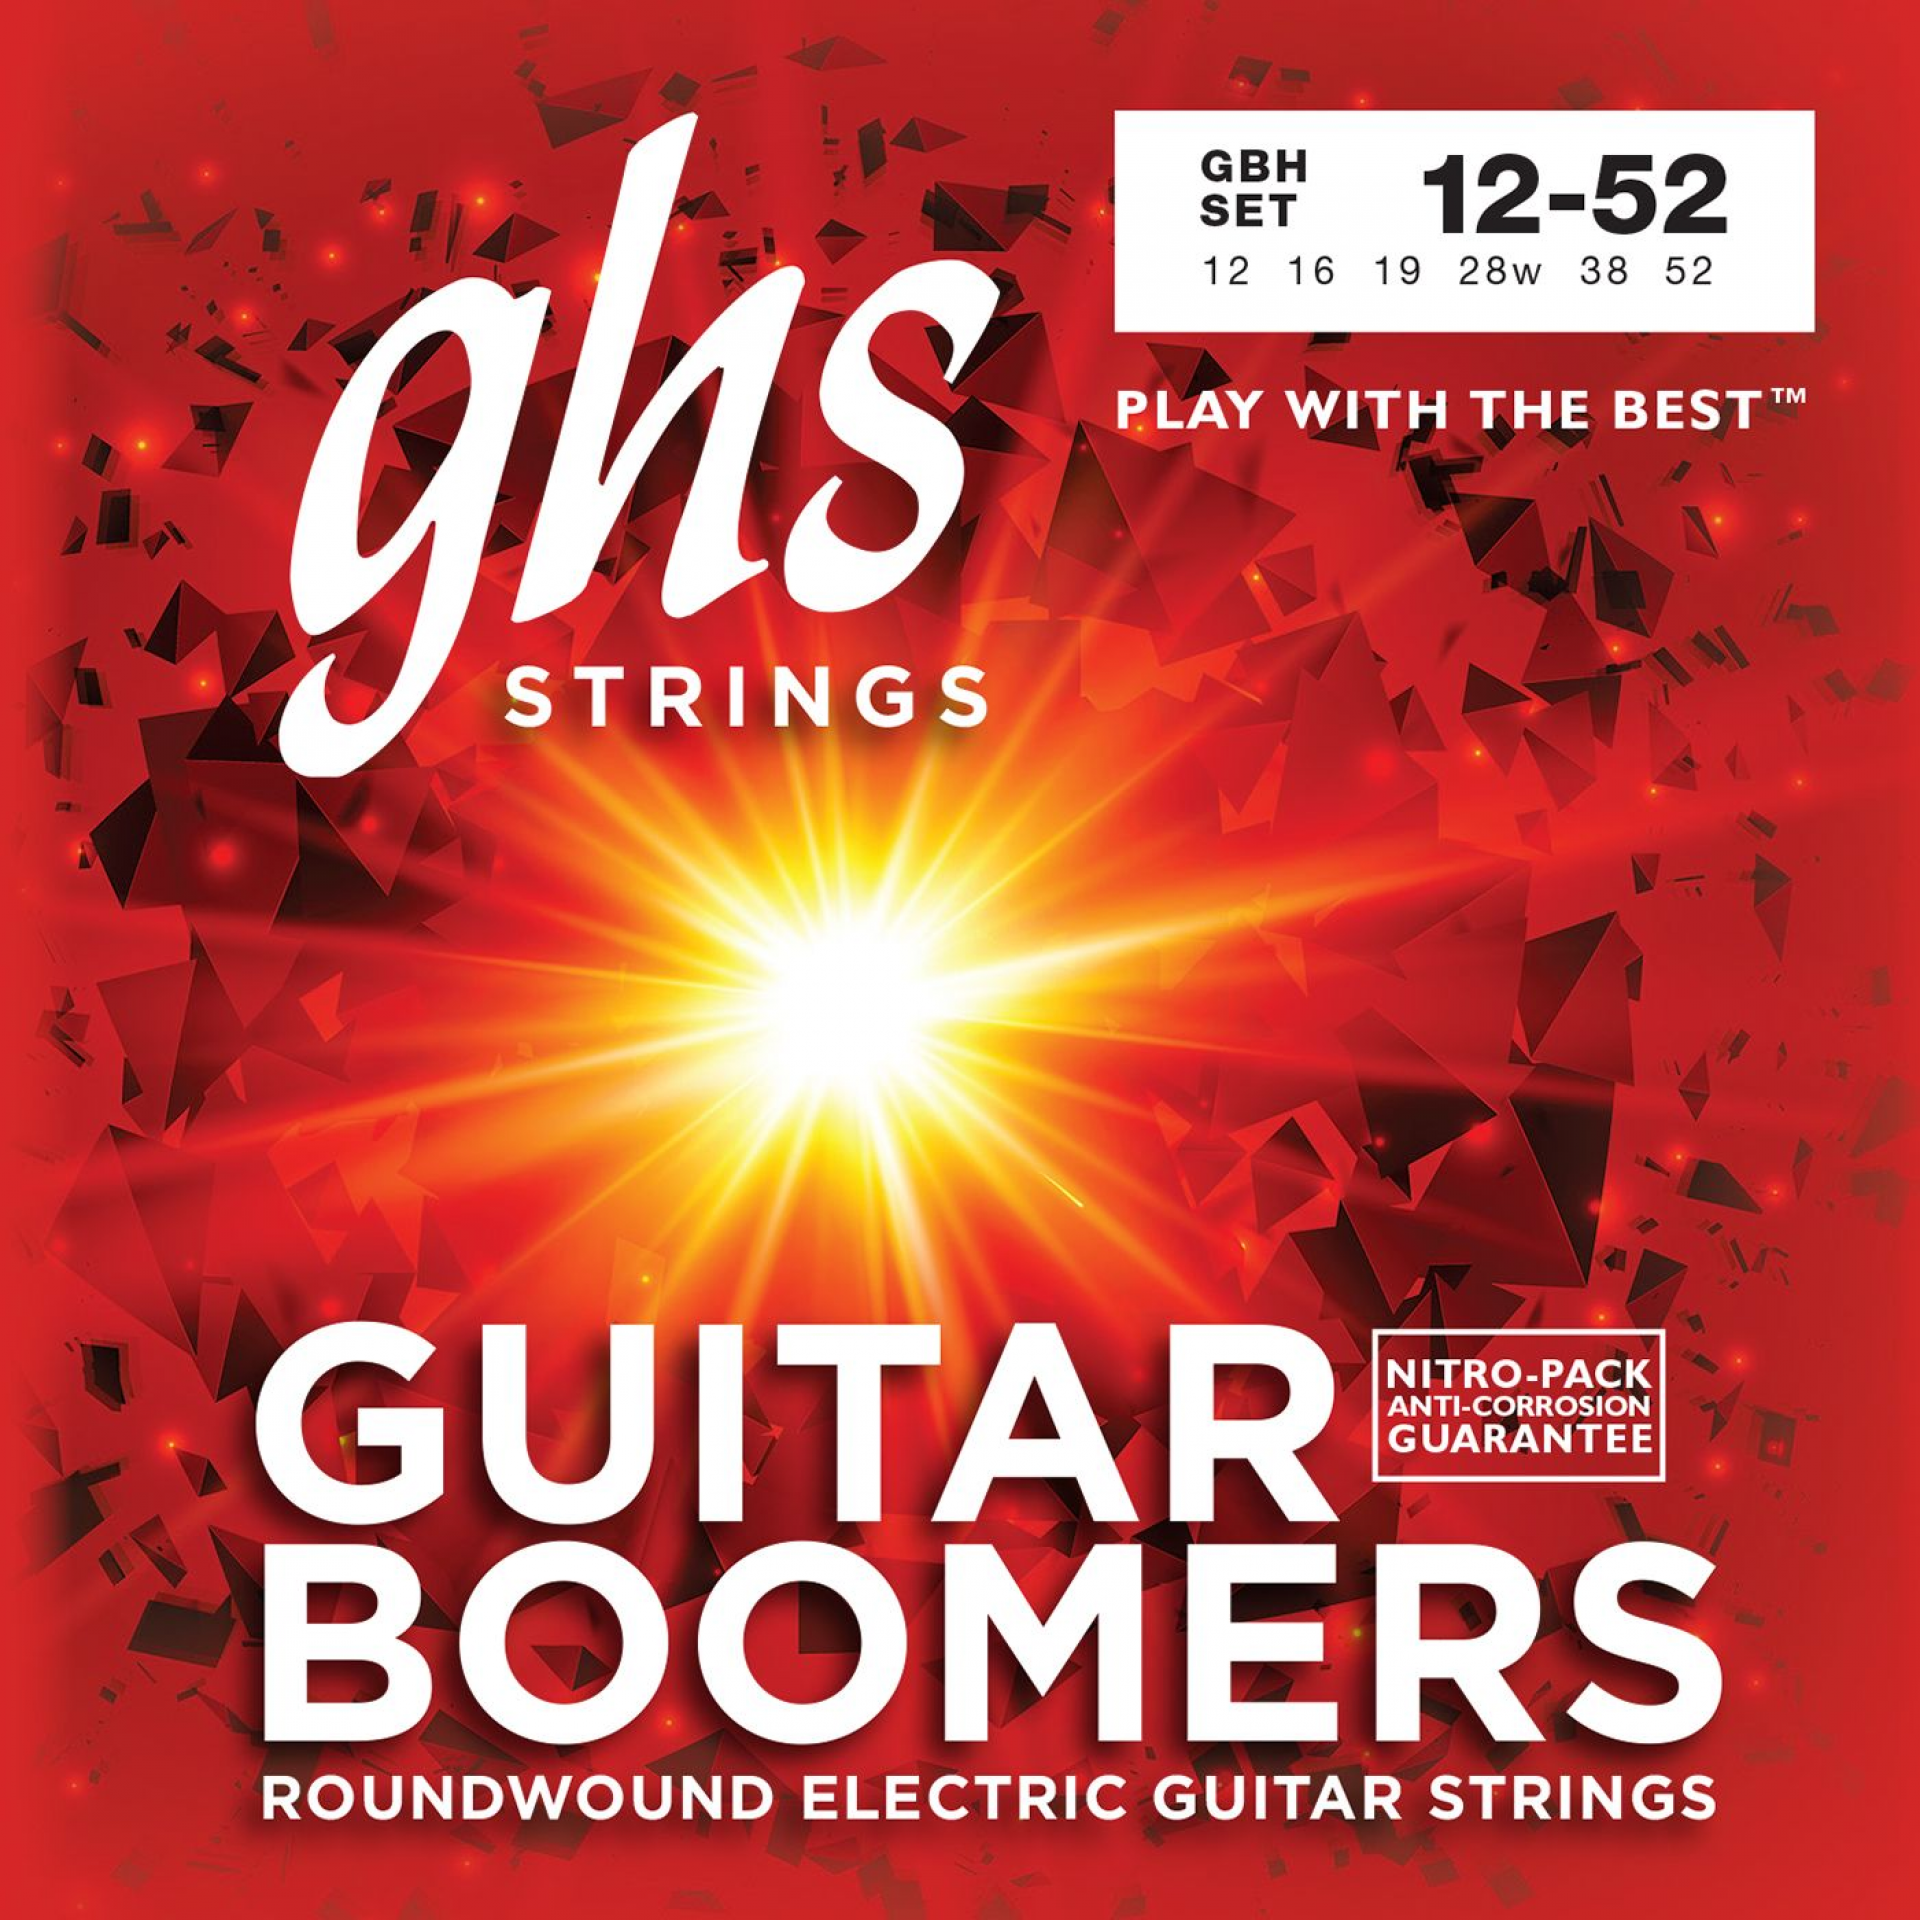 GHS GBH Boomers Roundwound Heavy Electric Guitar Strings (6-String Set, 12 - 52)